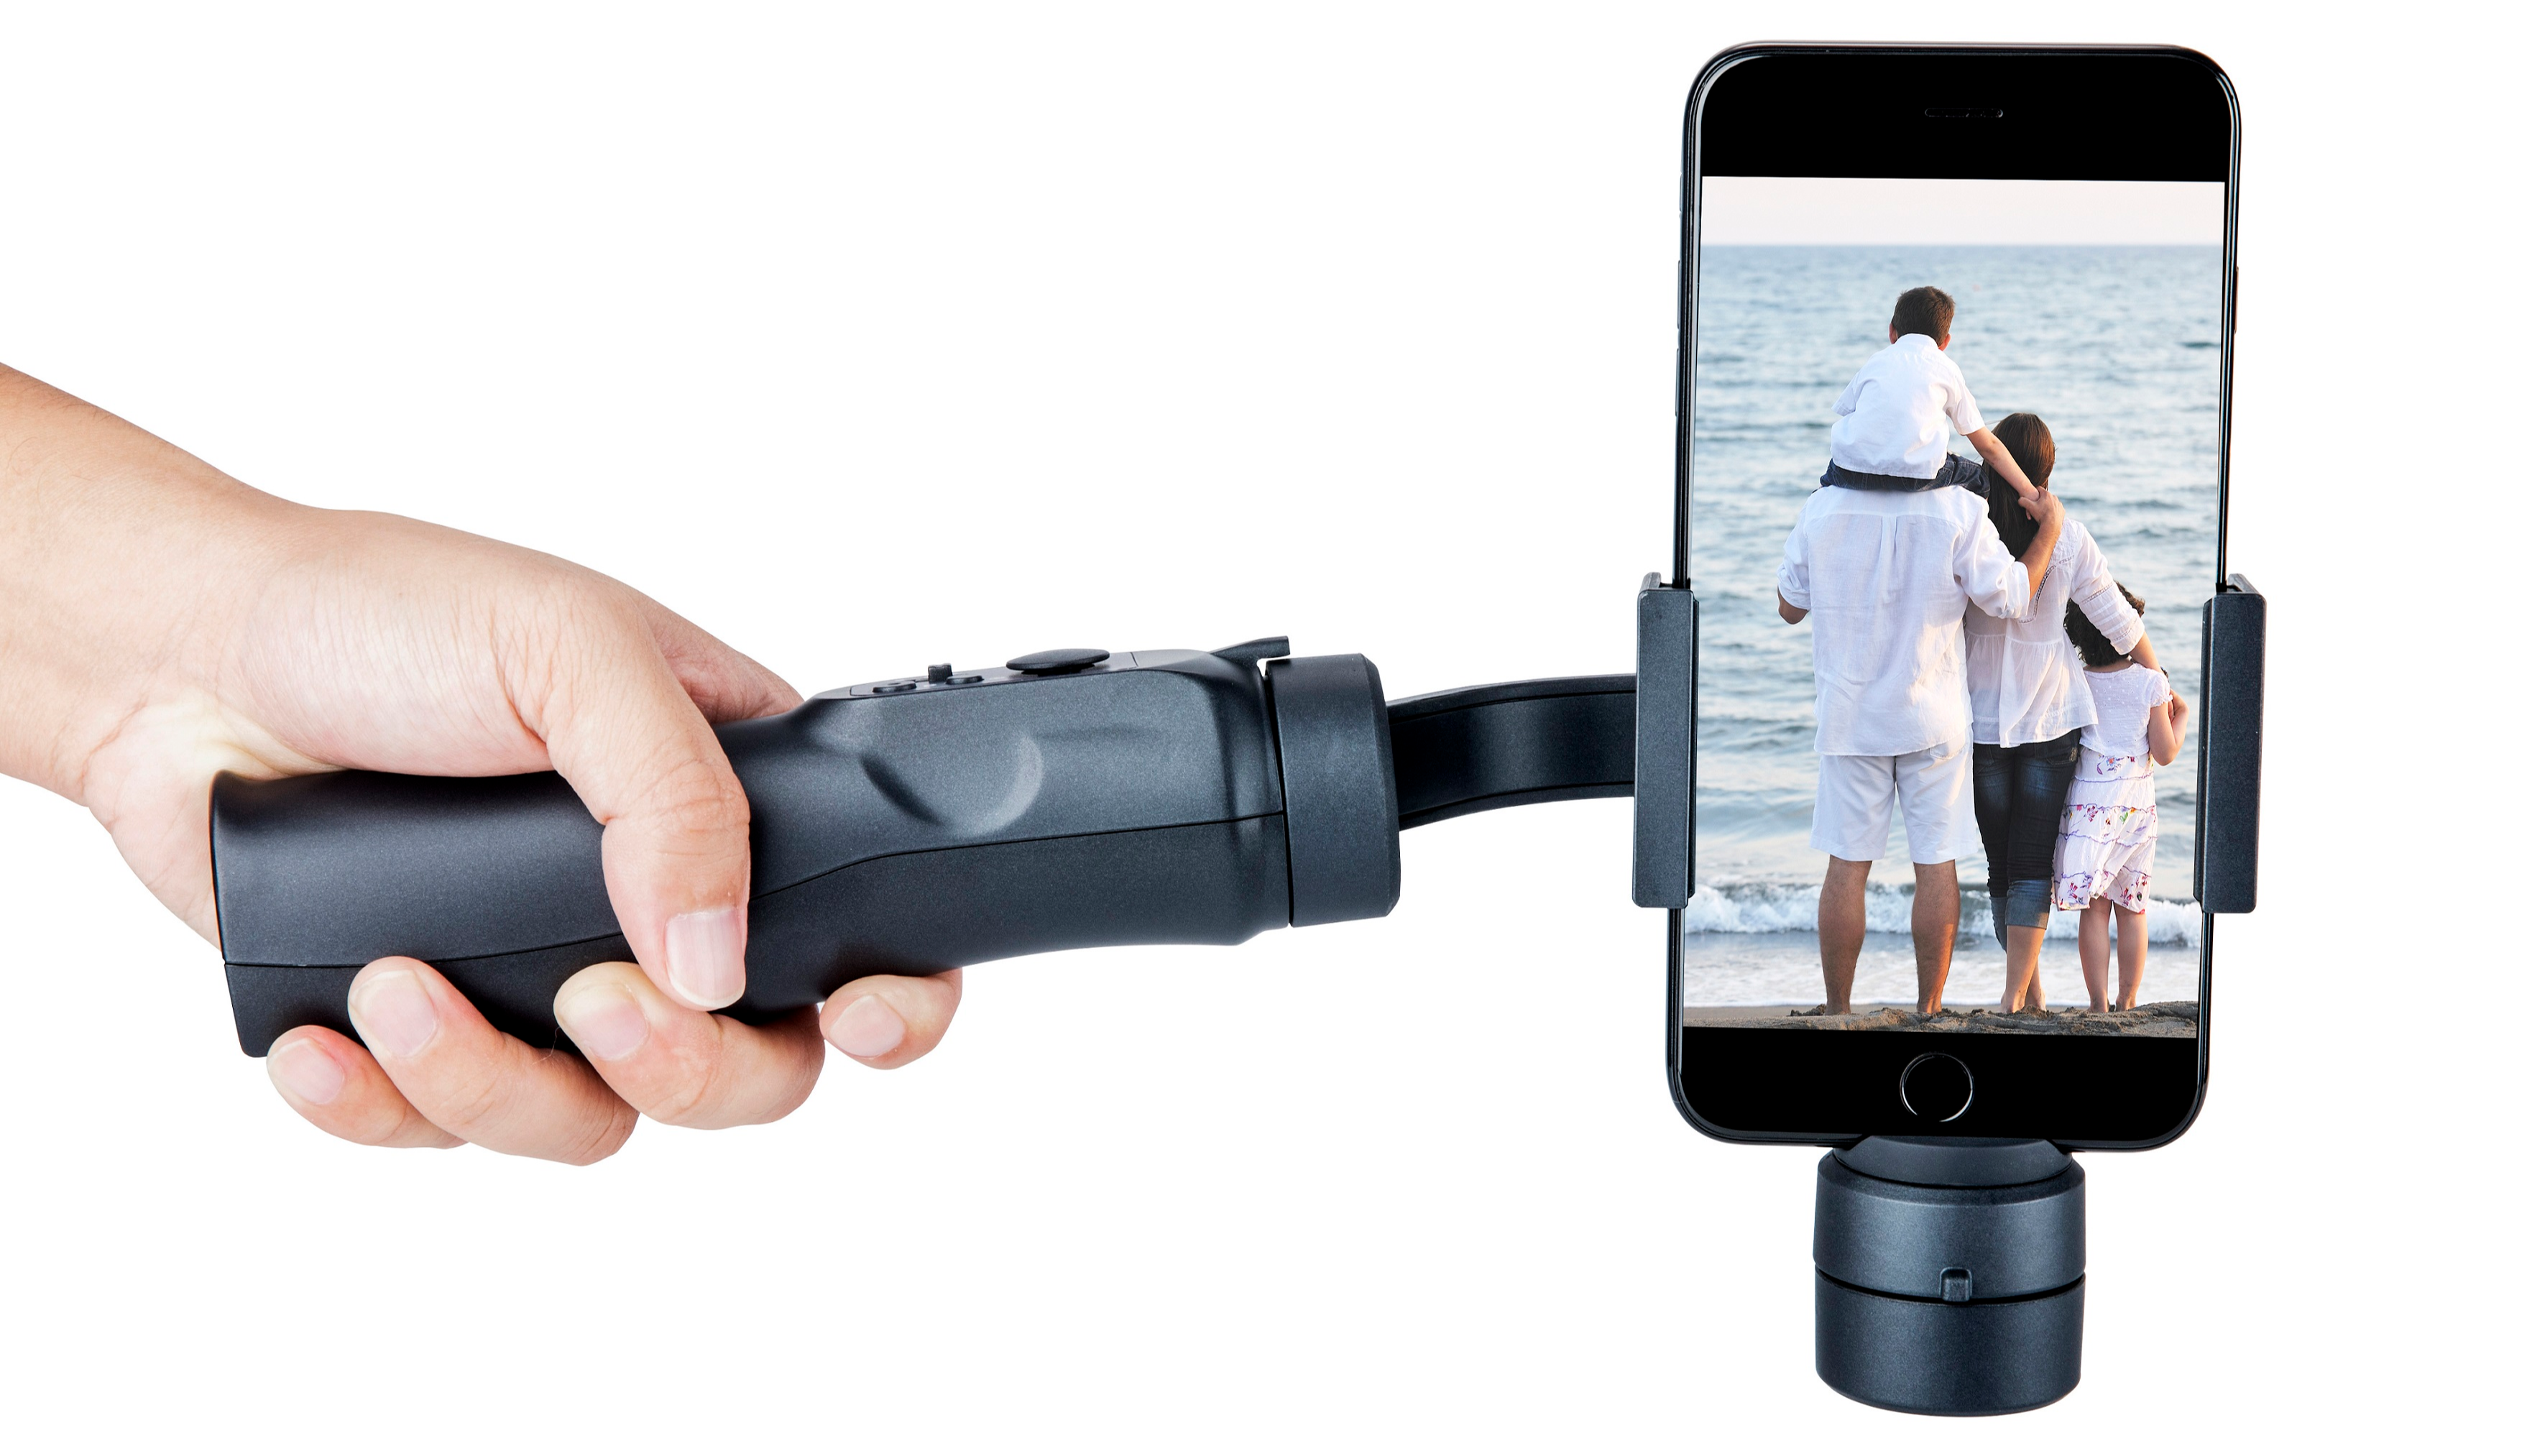 3 Axis Handheld Gimbal Stabilizer Face Tracking For Smart Phone Tracking Tripod Action Camera Phone Stabilizer